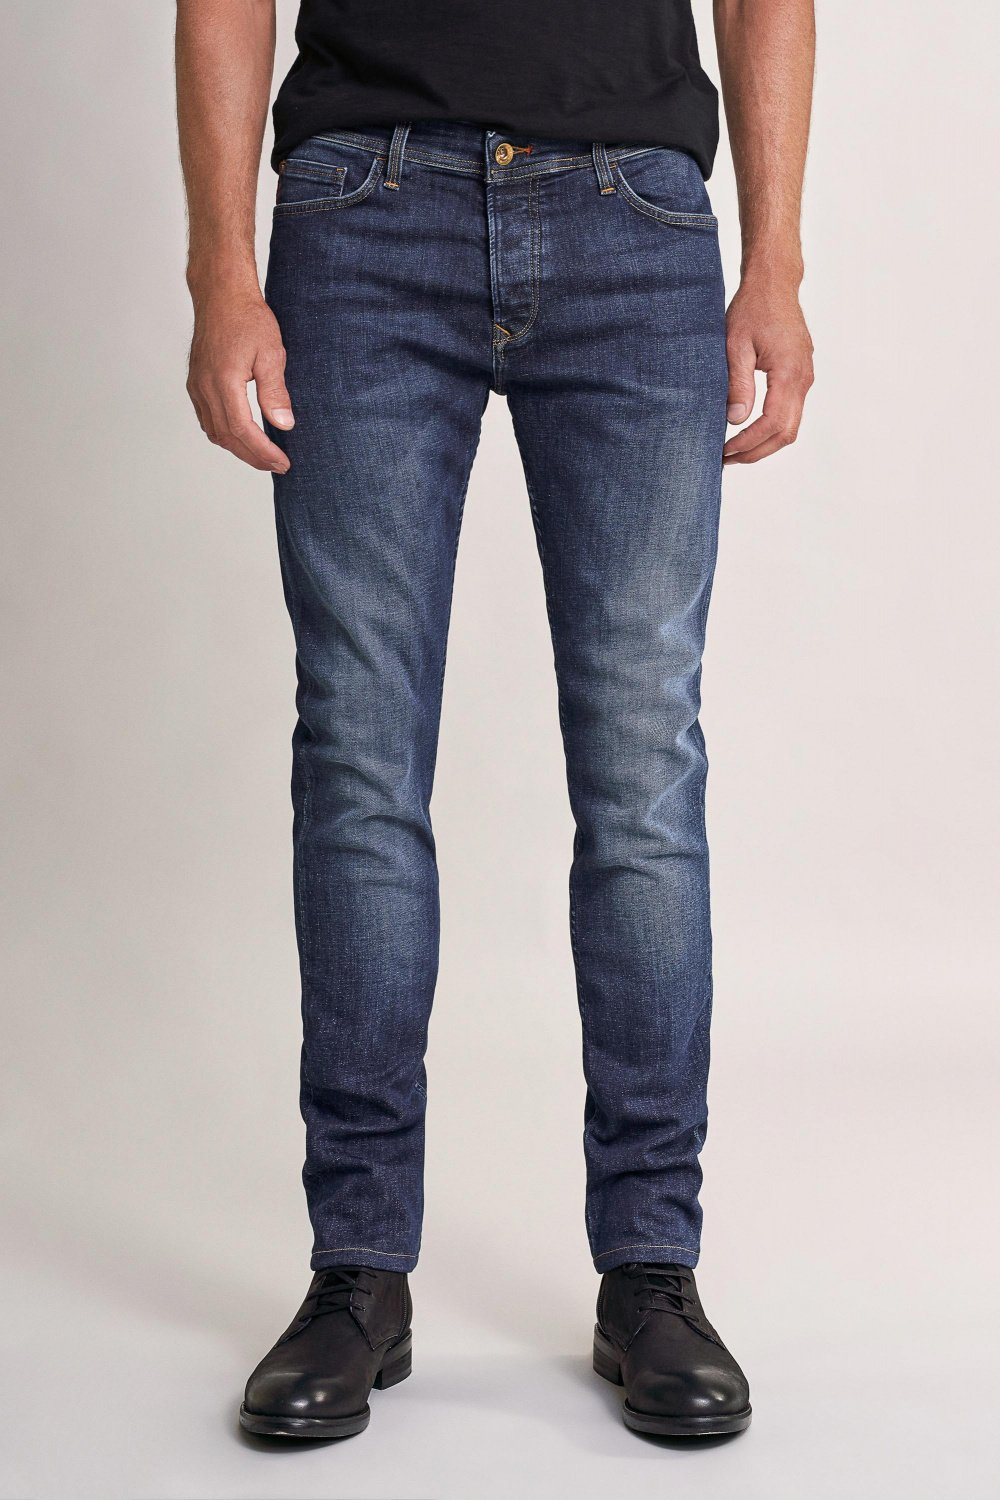 Jeans slender slim carrot rip proof - Salsa